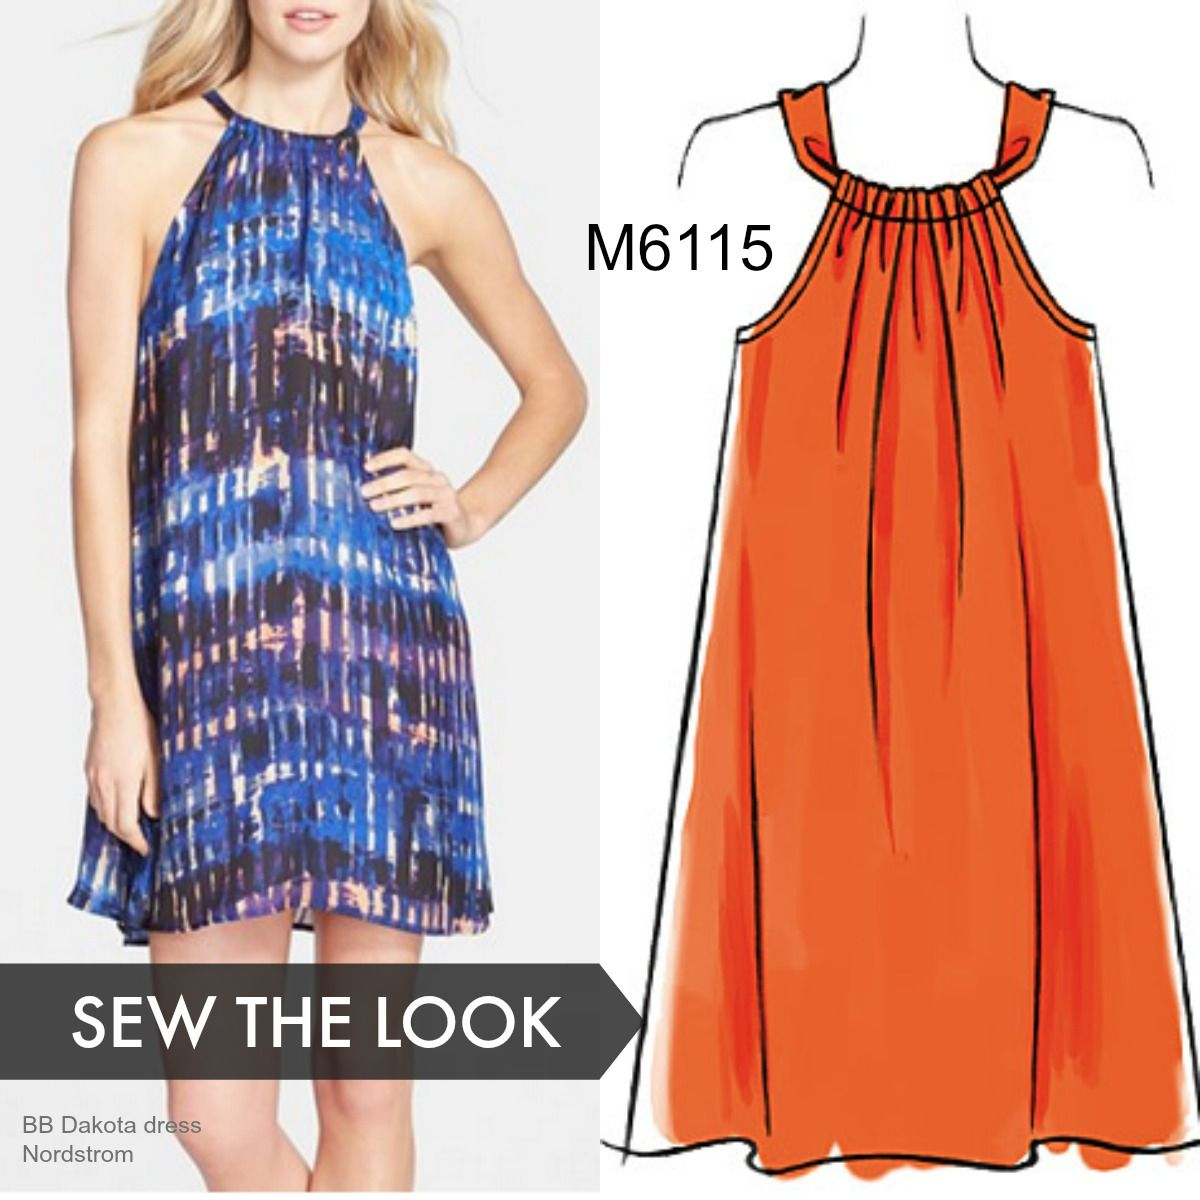 Sew the look: This McCall's dress pattern is easy enough for a